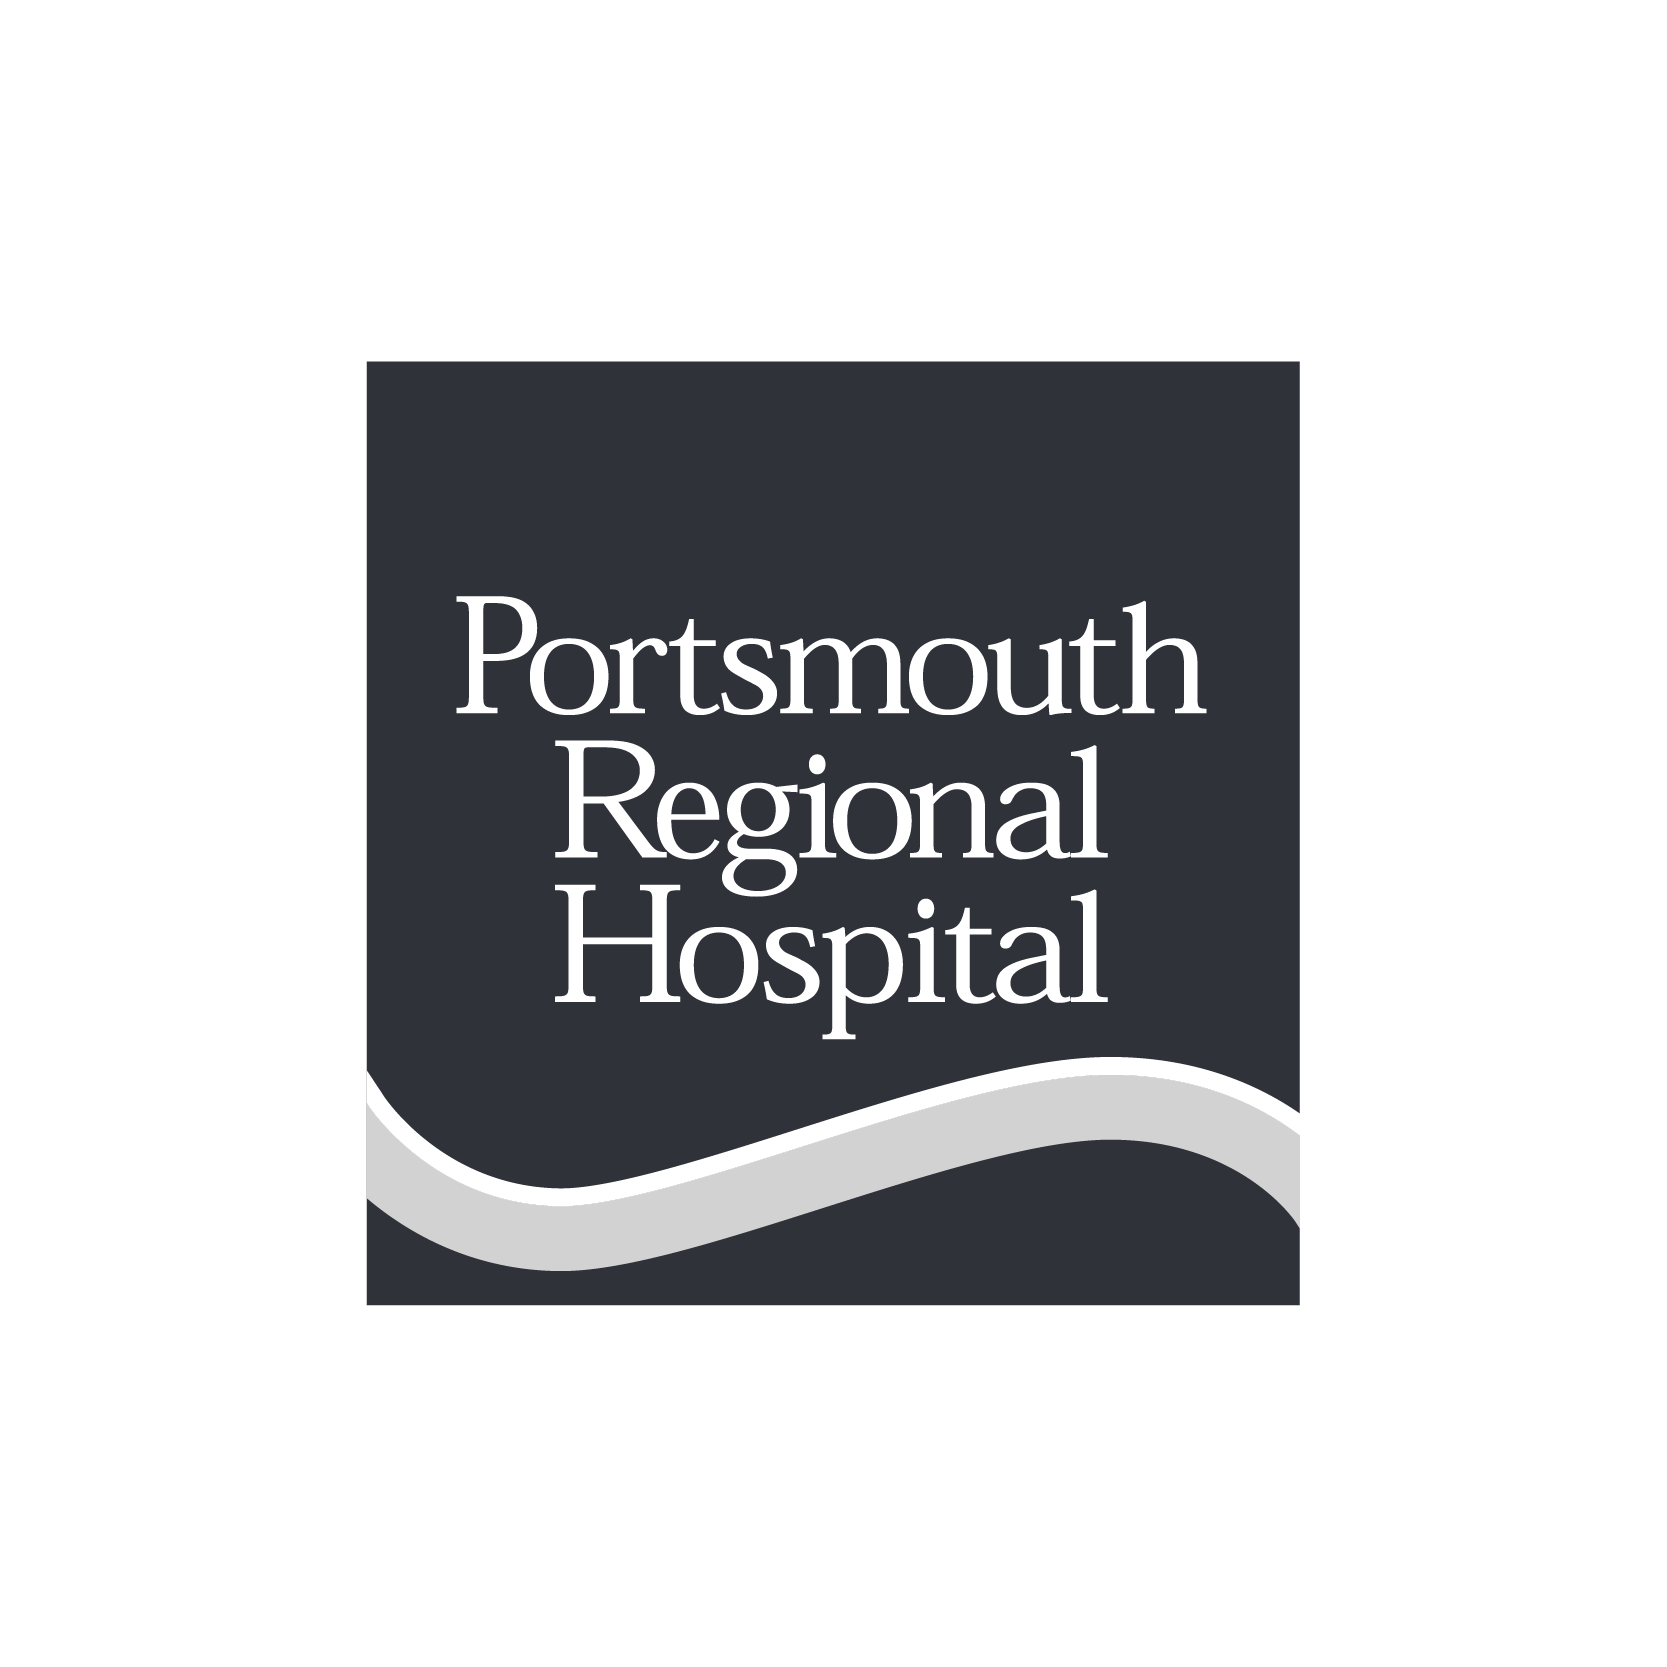 _all_logos_img-portsmouth-hospital-logo.png